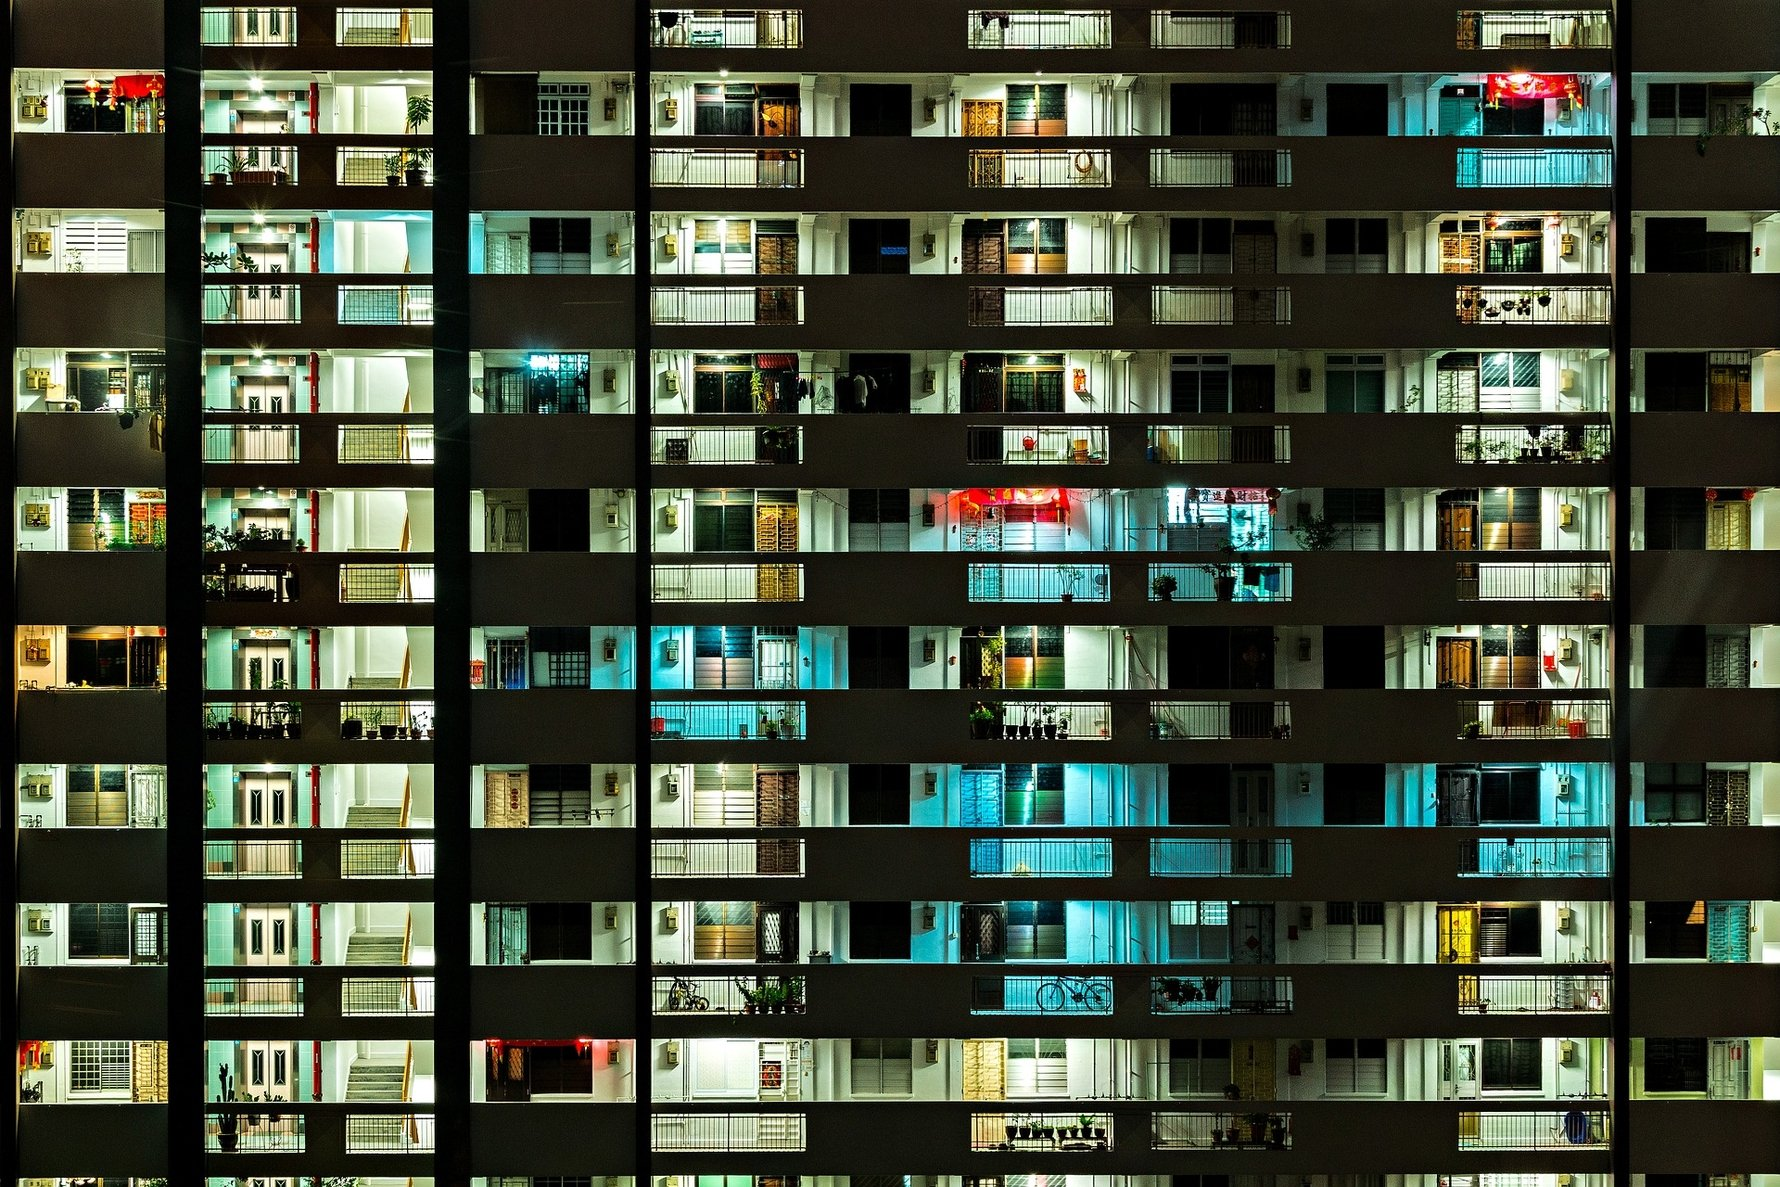 24 Hours in Singapore - Urban apartment block © xegxef from Pixabay